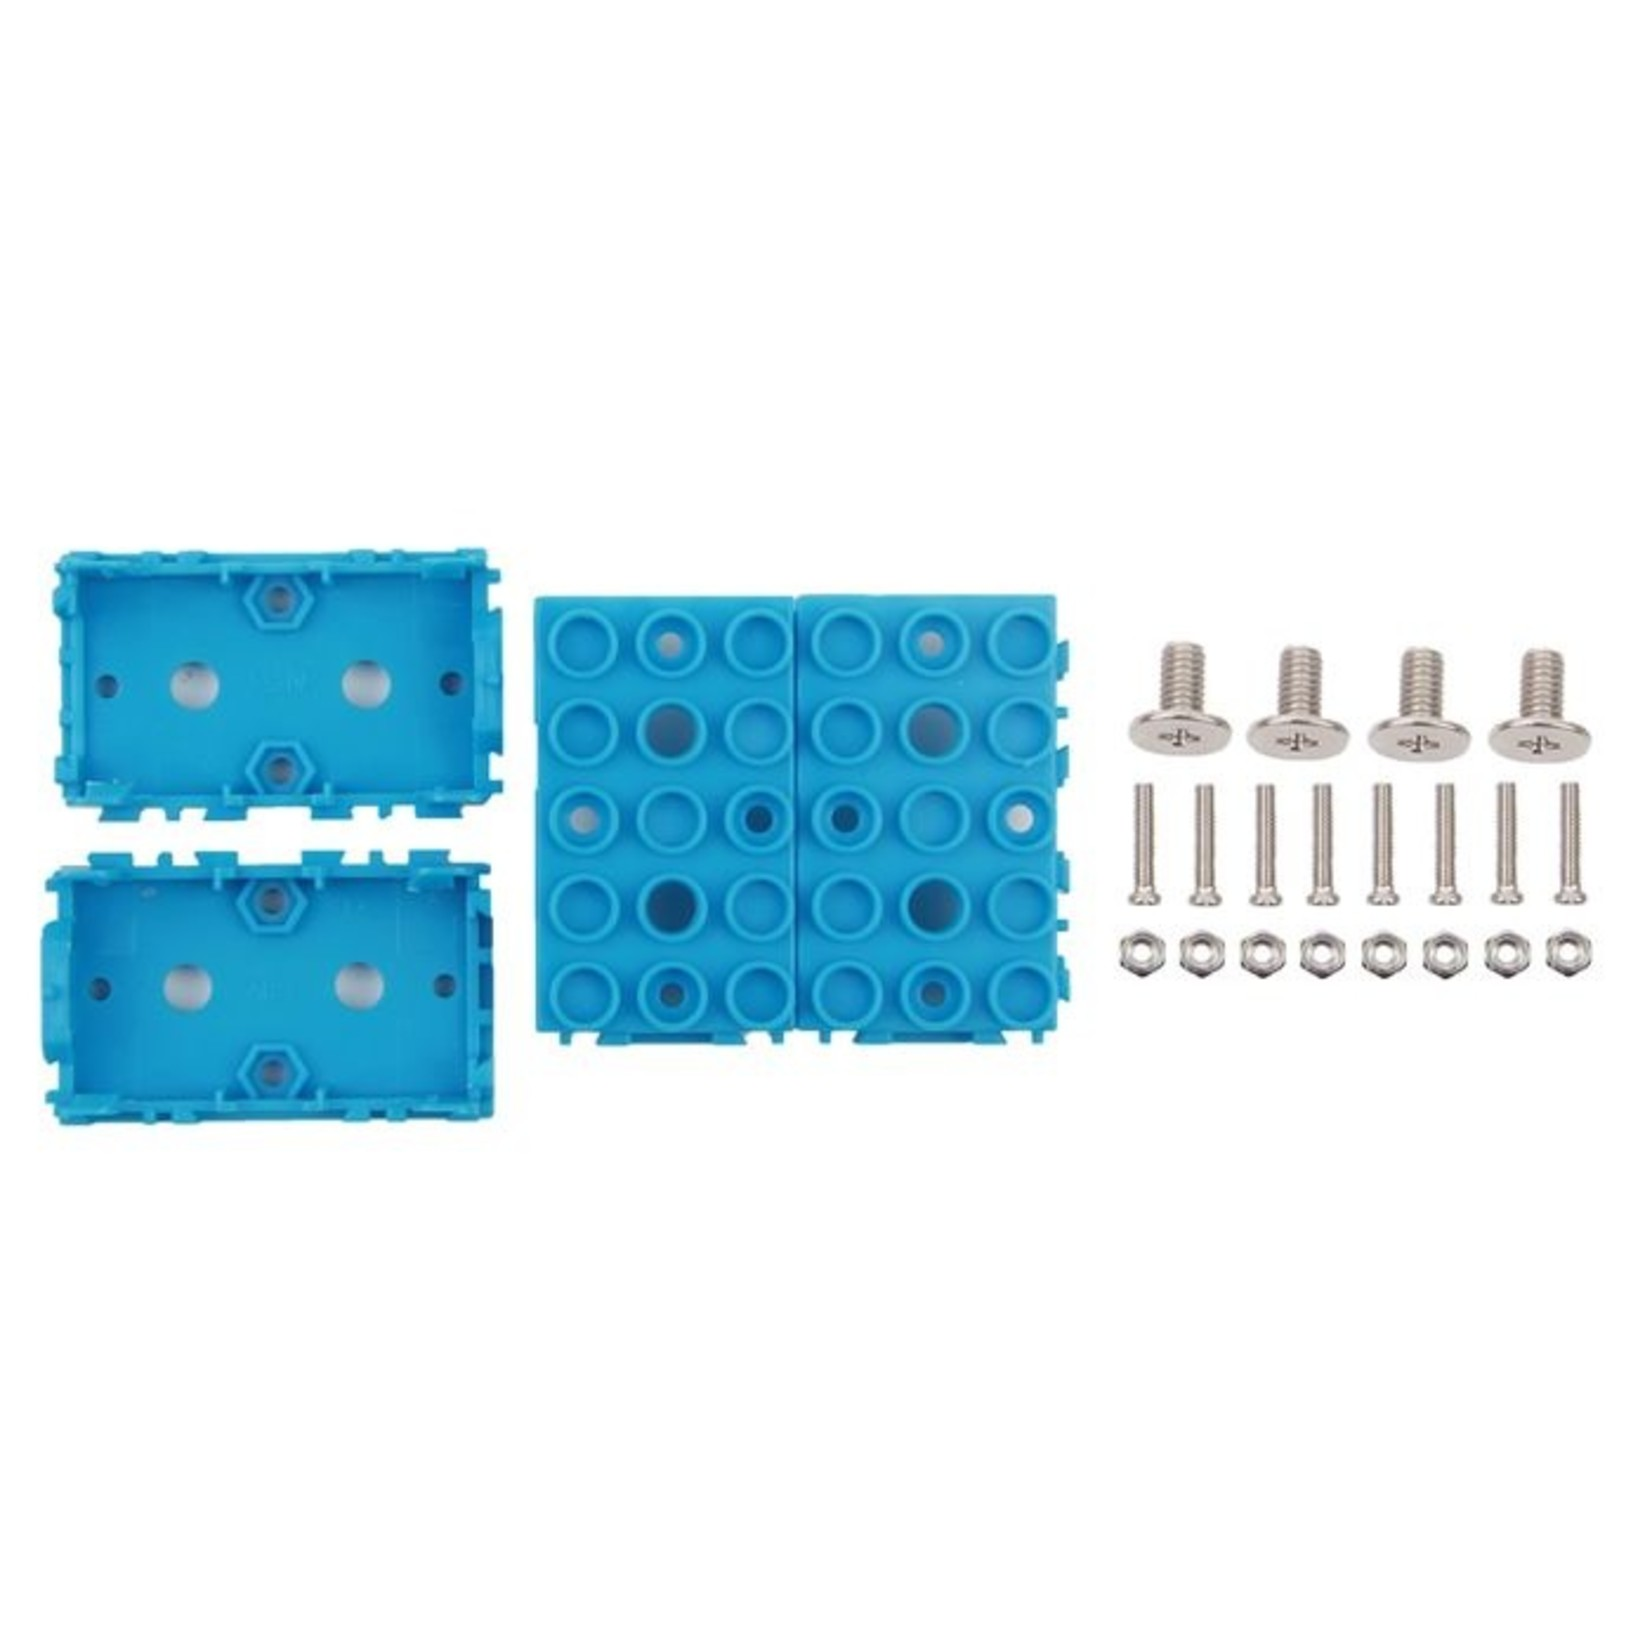 Seeed Grove - Blue Wrapper 1*2 (4-pack)